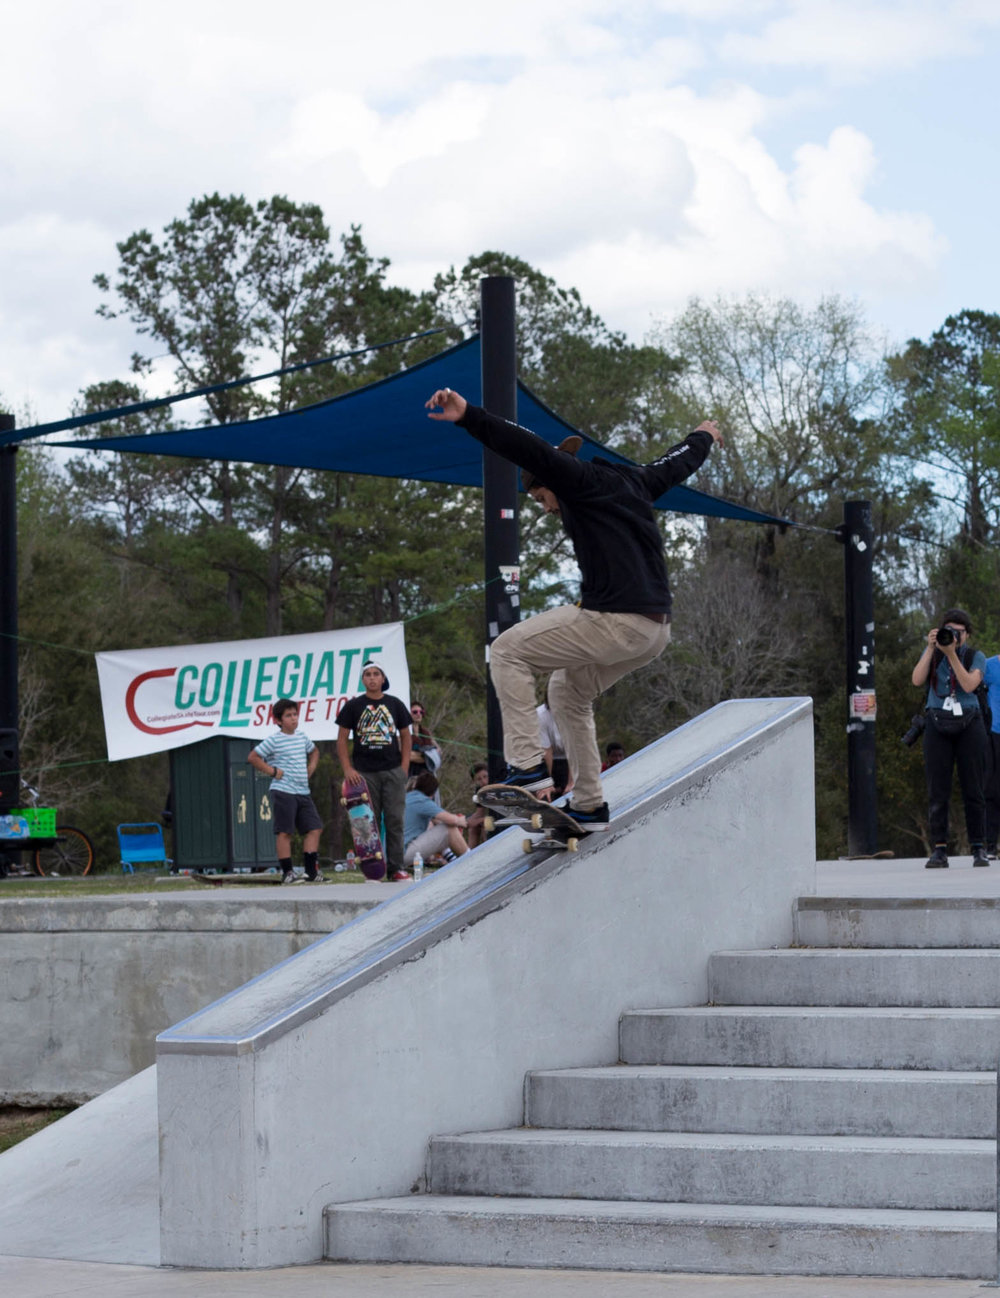 Carlos Merida has a solid frontside 5-0.